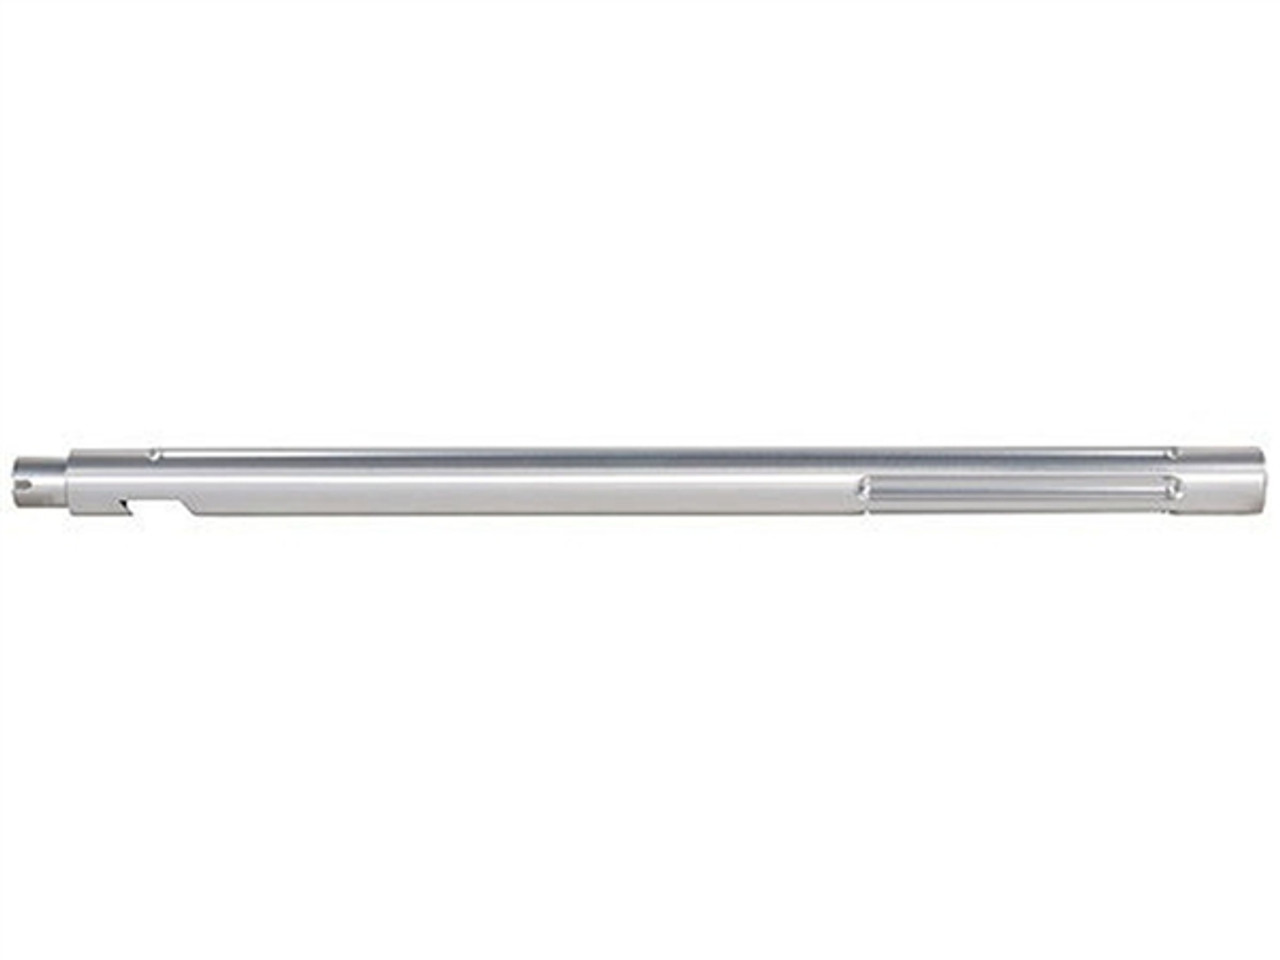 Tactical Solutions - 10/22 Threaded End Lightweight Barrel - Silver